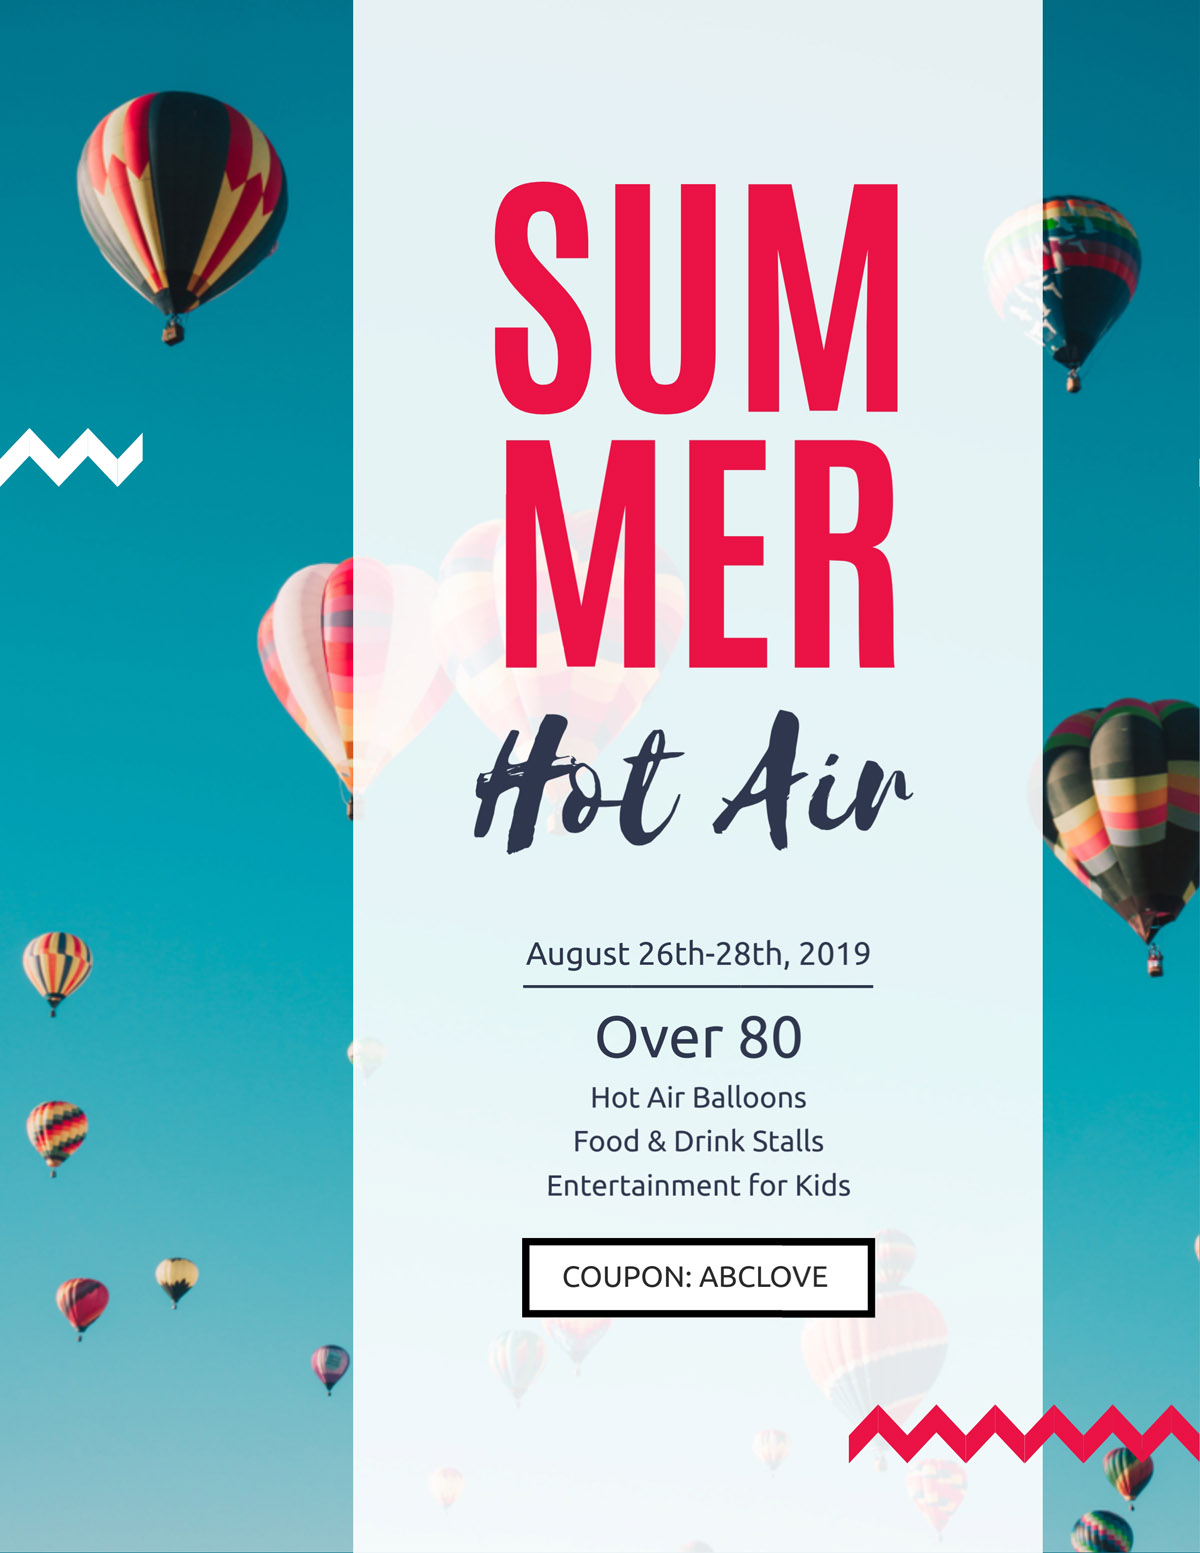 flyer templates - outdoor travel tour event